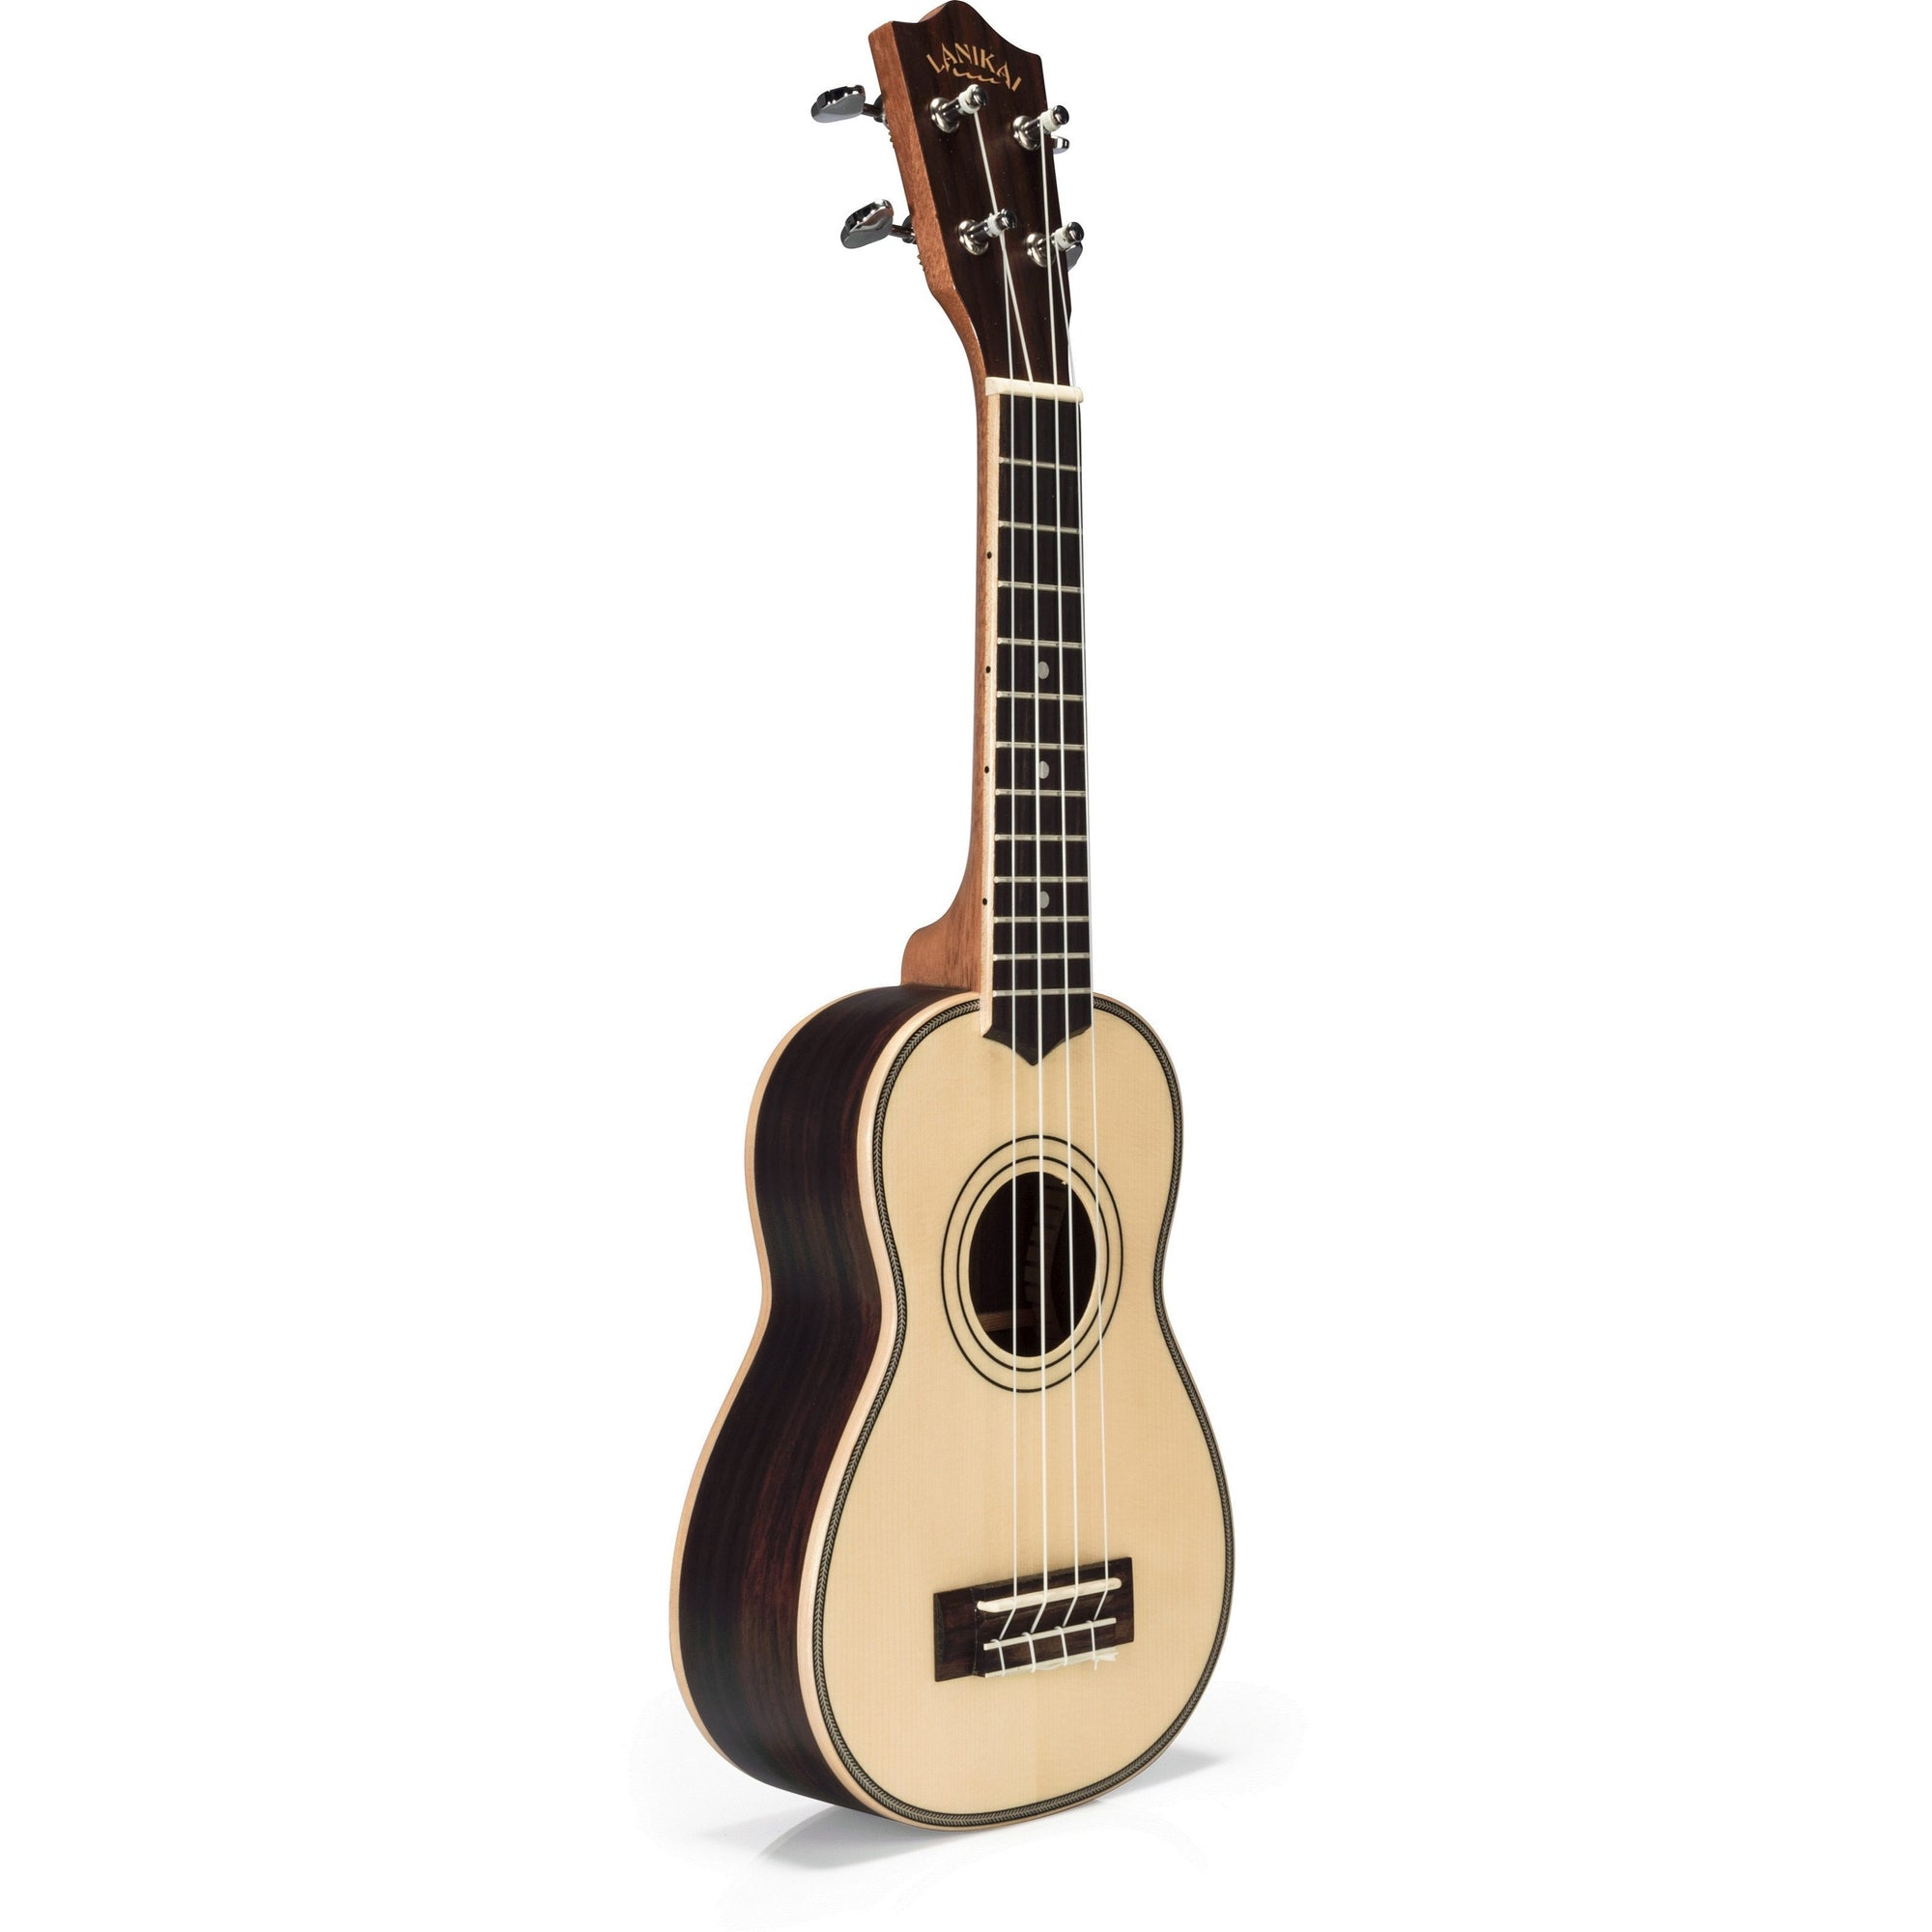 Lanikai Solid Spruce Top Soprano Ukulele (with Gig Bag)